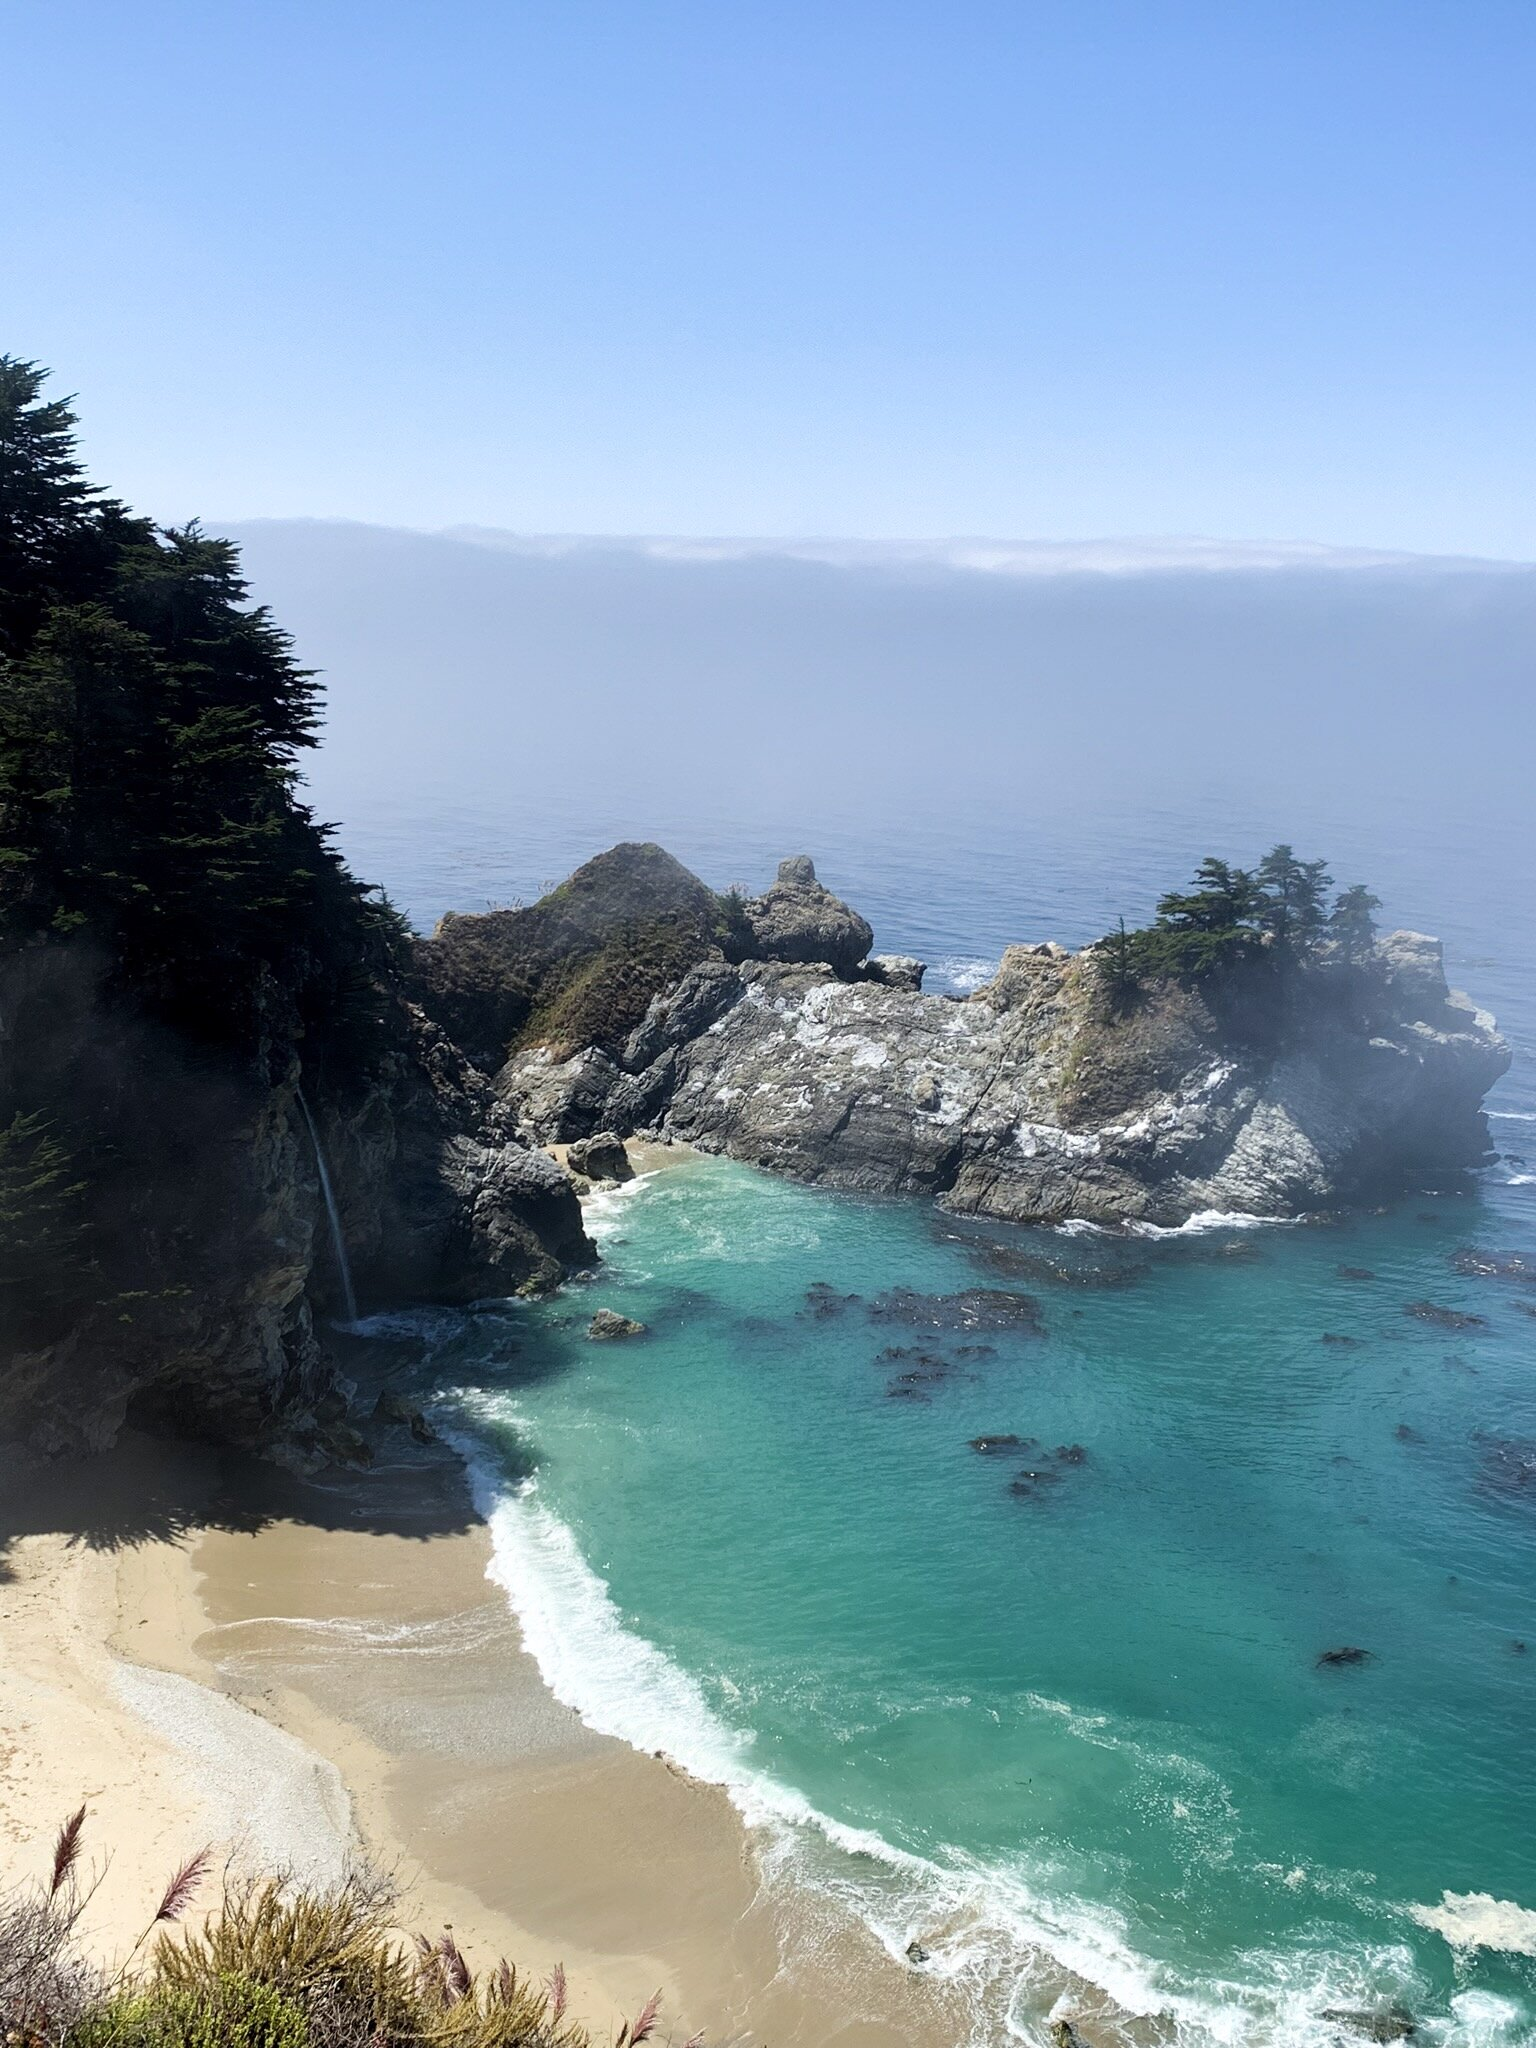 McWay Falls lookout point en route through Big Sur